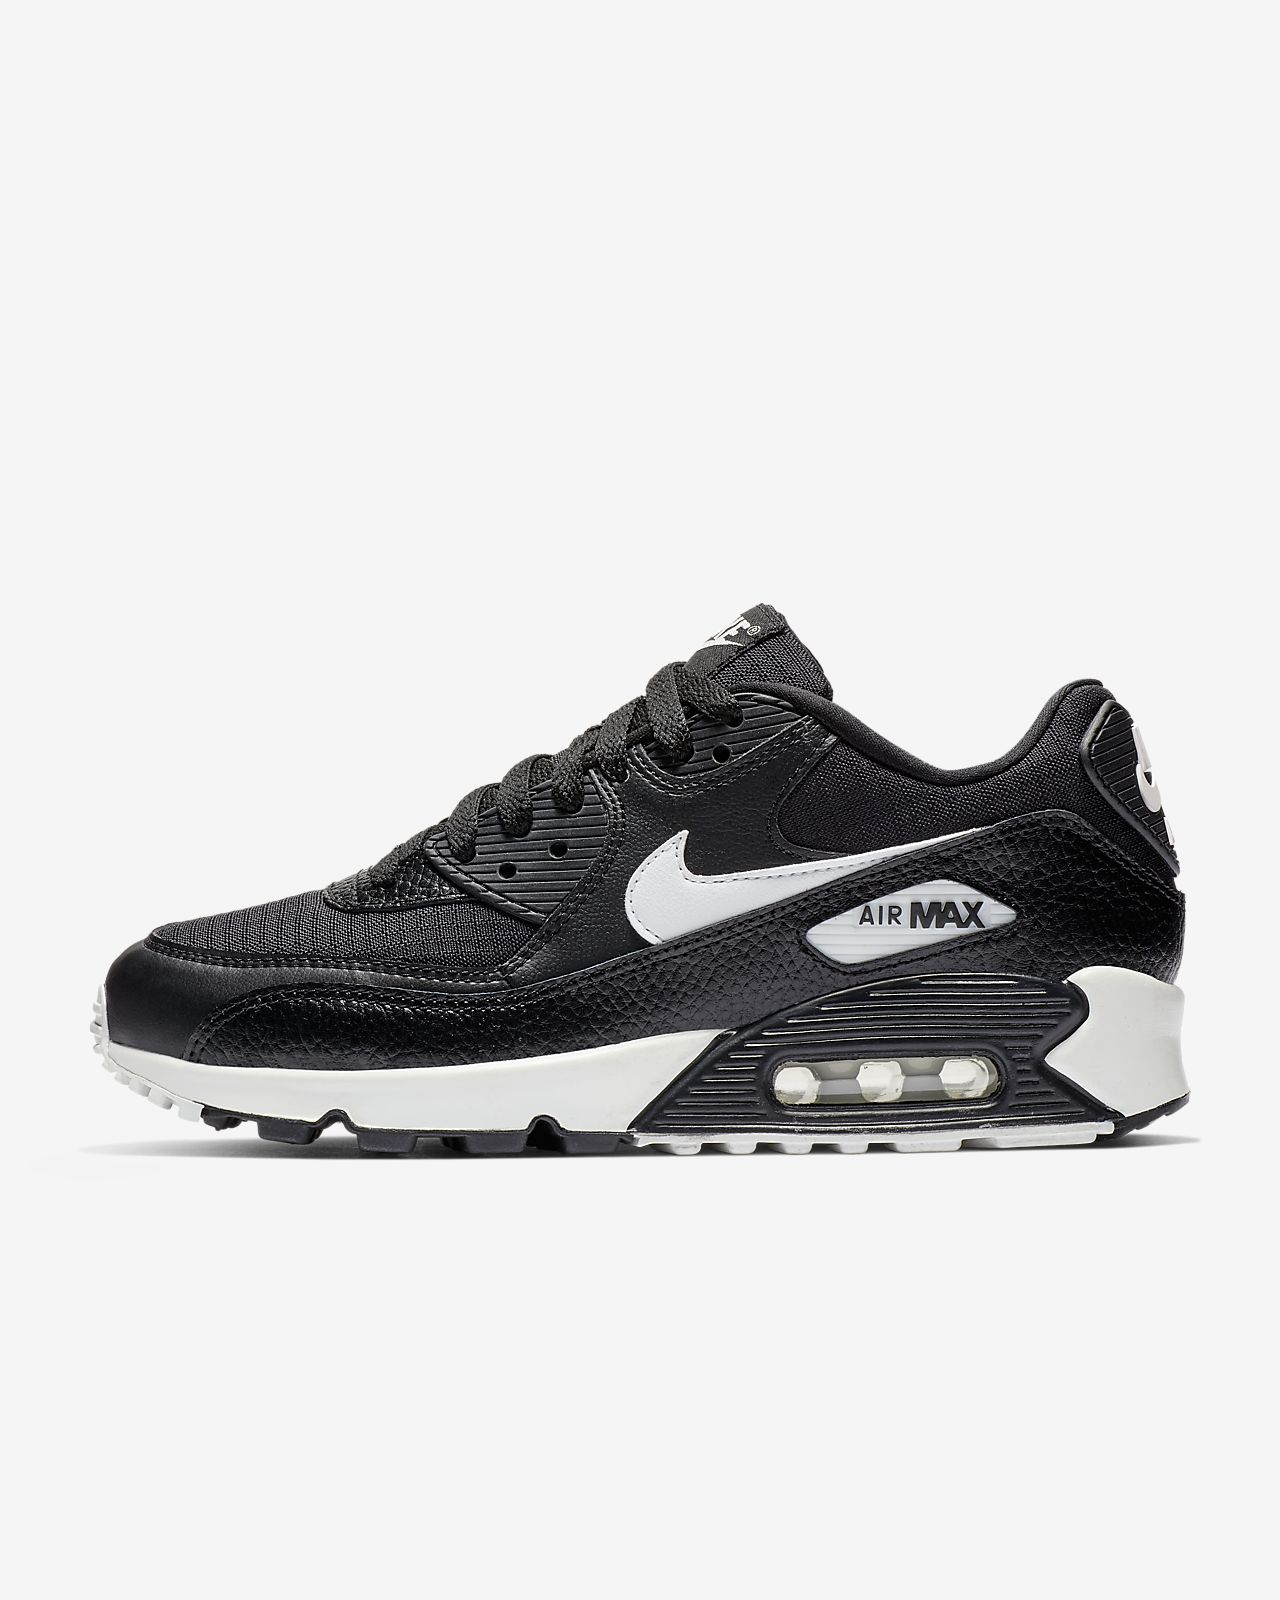 super popular 348d2 37610 Women s Shoe. Nike Air Max 90